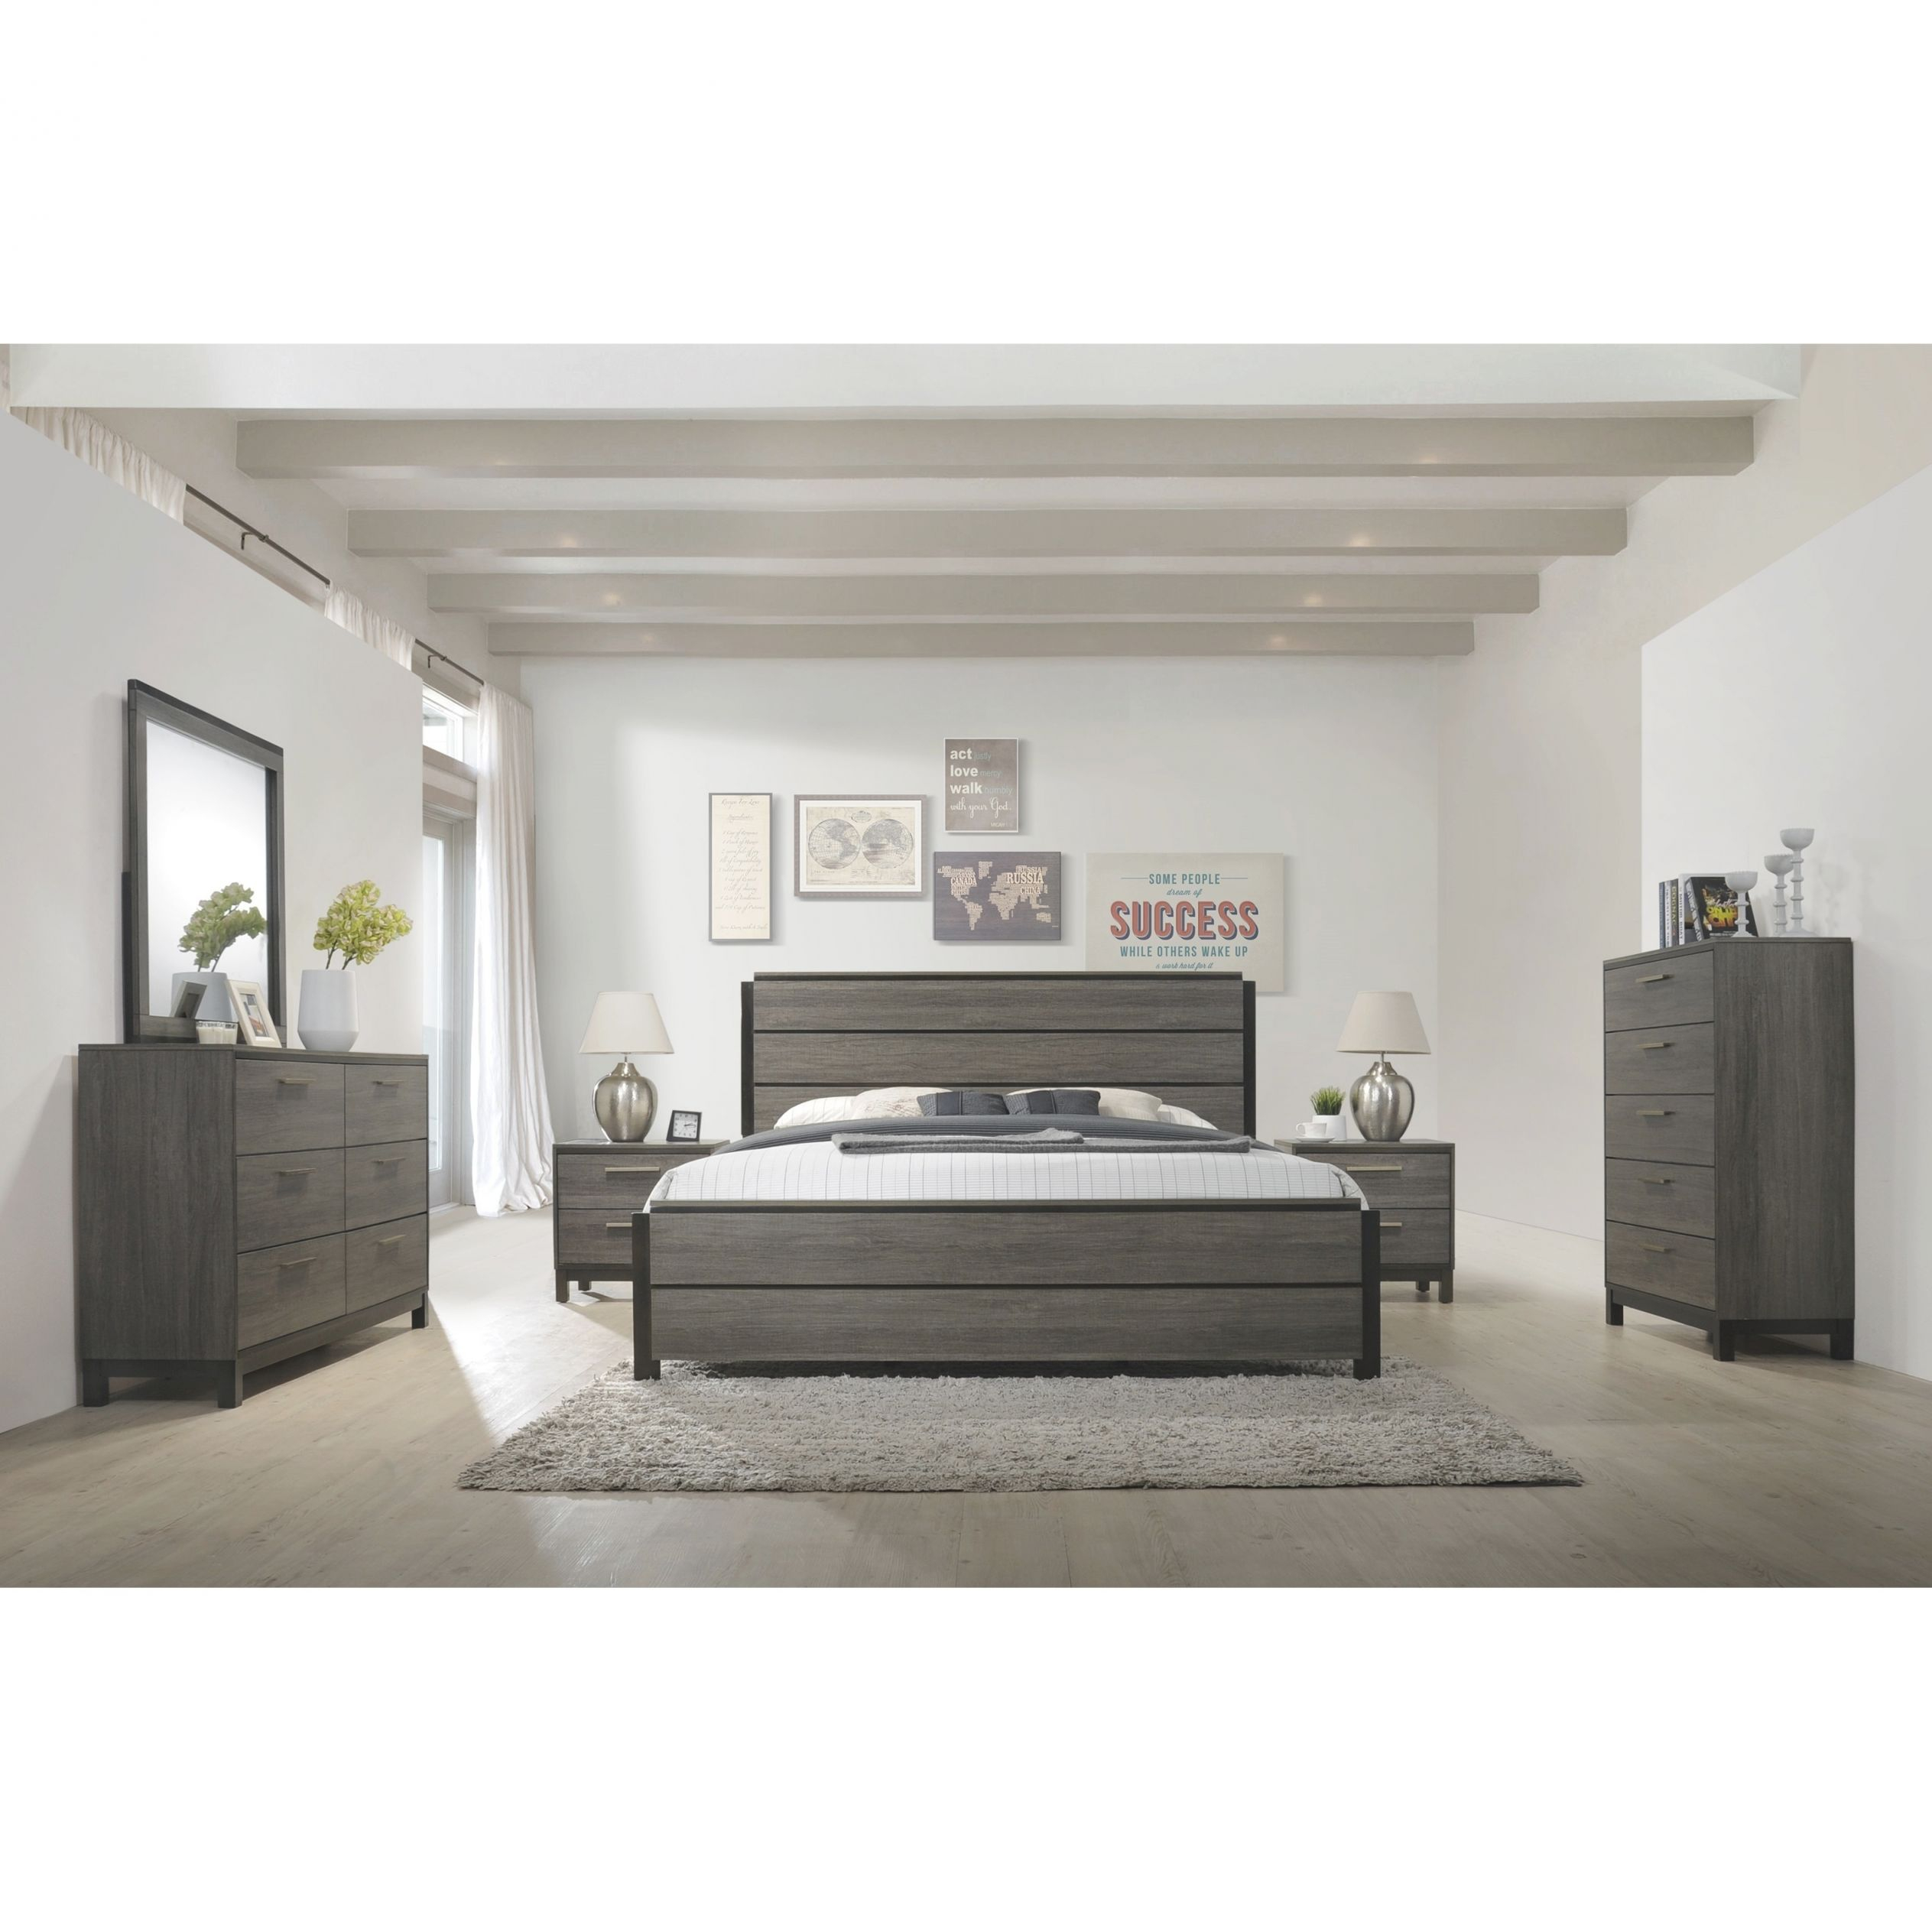 Ioana 187 Antique Grey Finish Wood Bed Room Set, Queen Size Bed, Dresser,  Mirror, 2 Night Stands, Chest pertaining to Queen Size Bedroom Furniture Sets